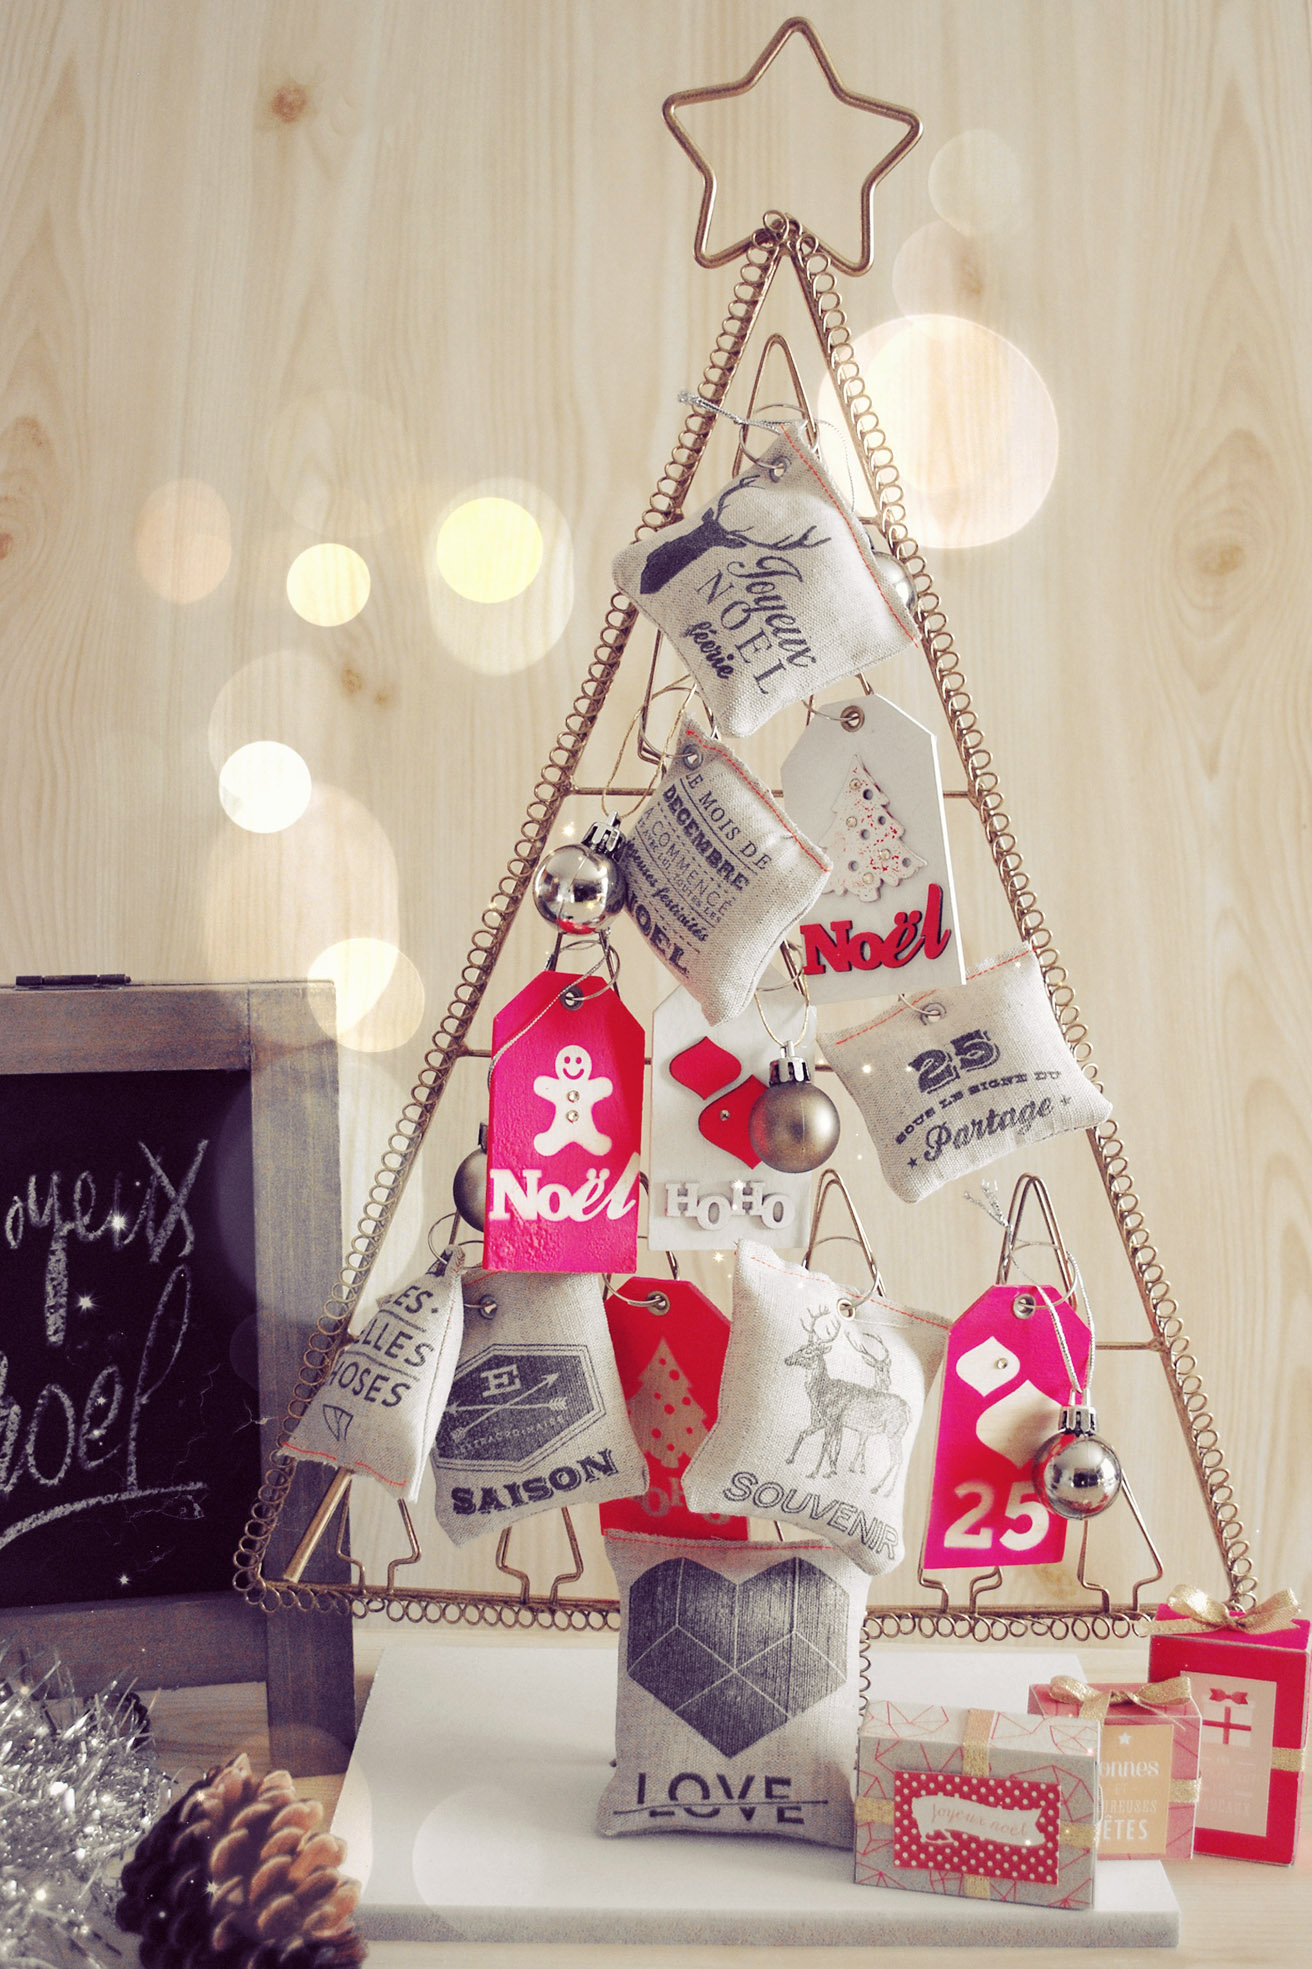 8 d cembre pour un sapin original kesi 39 art le blog for Decoration lumignon 8 decembre